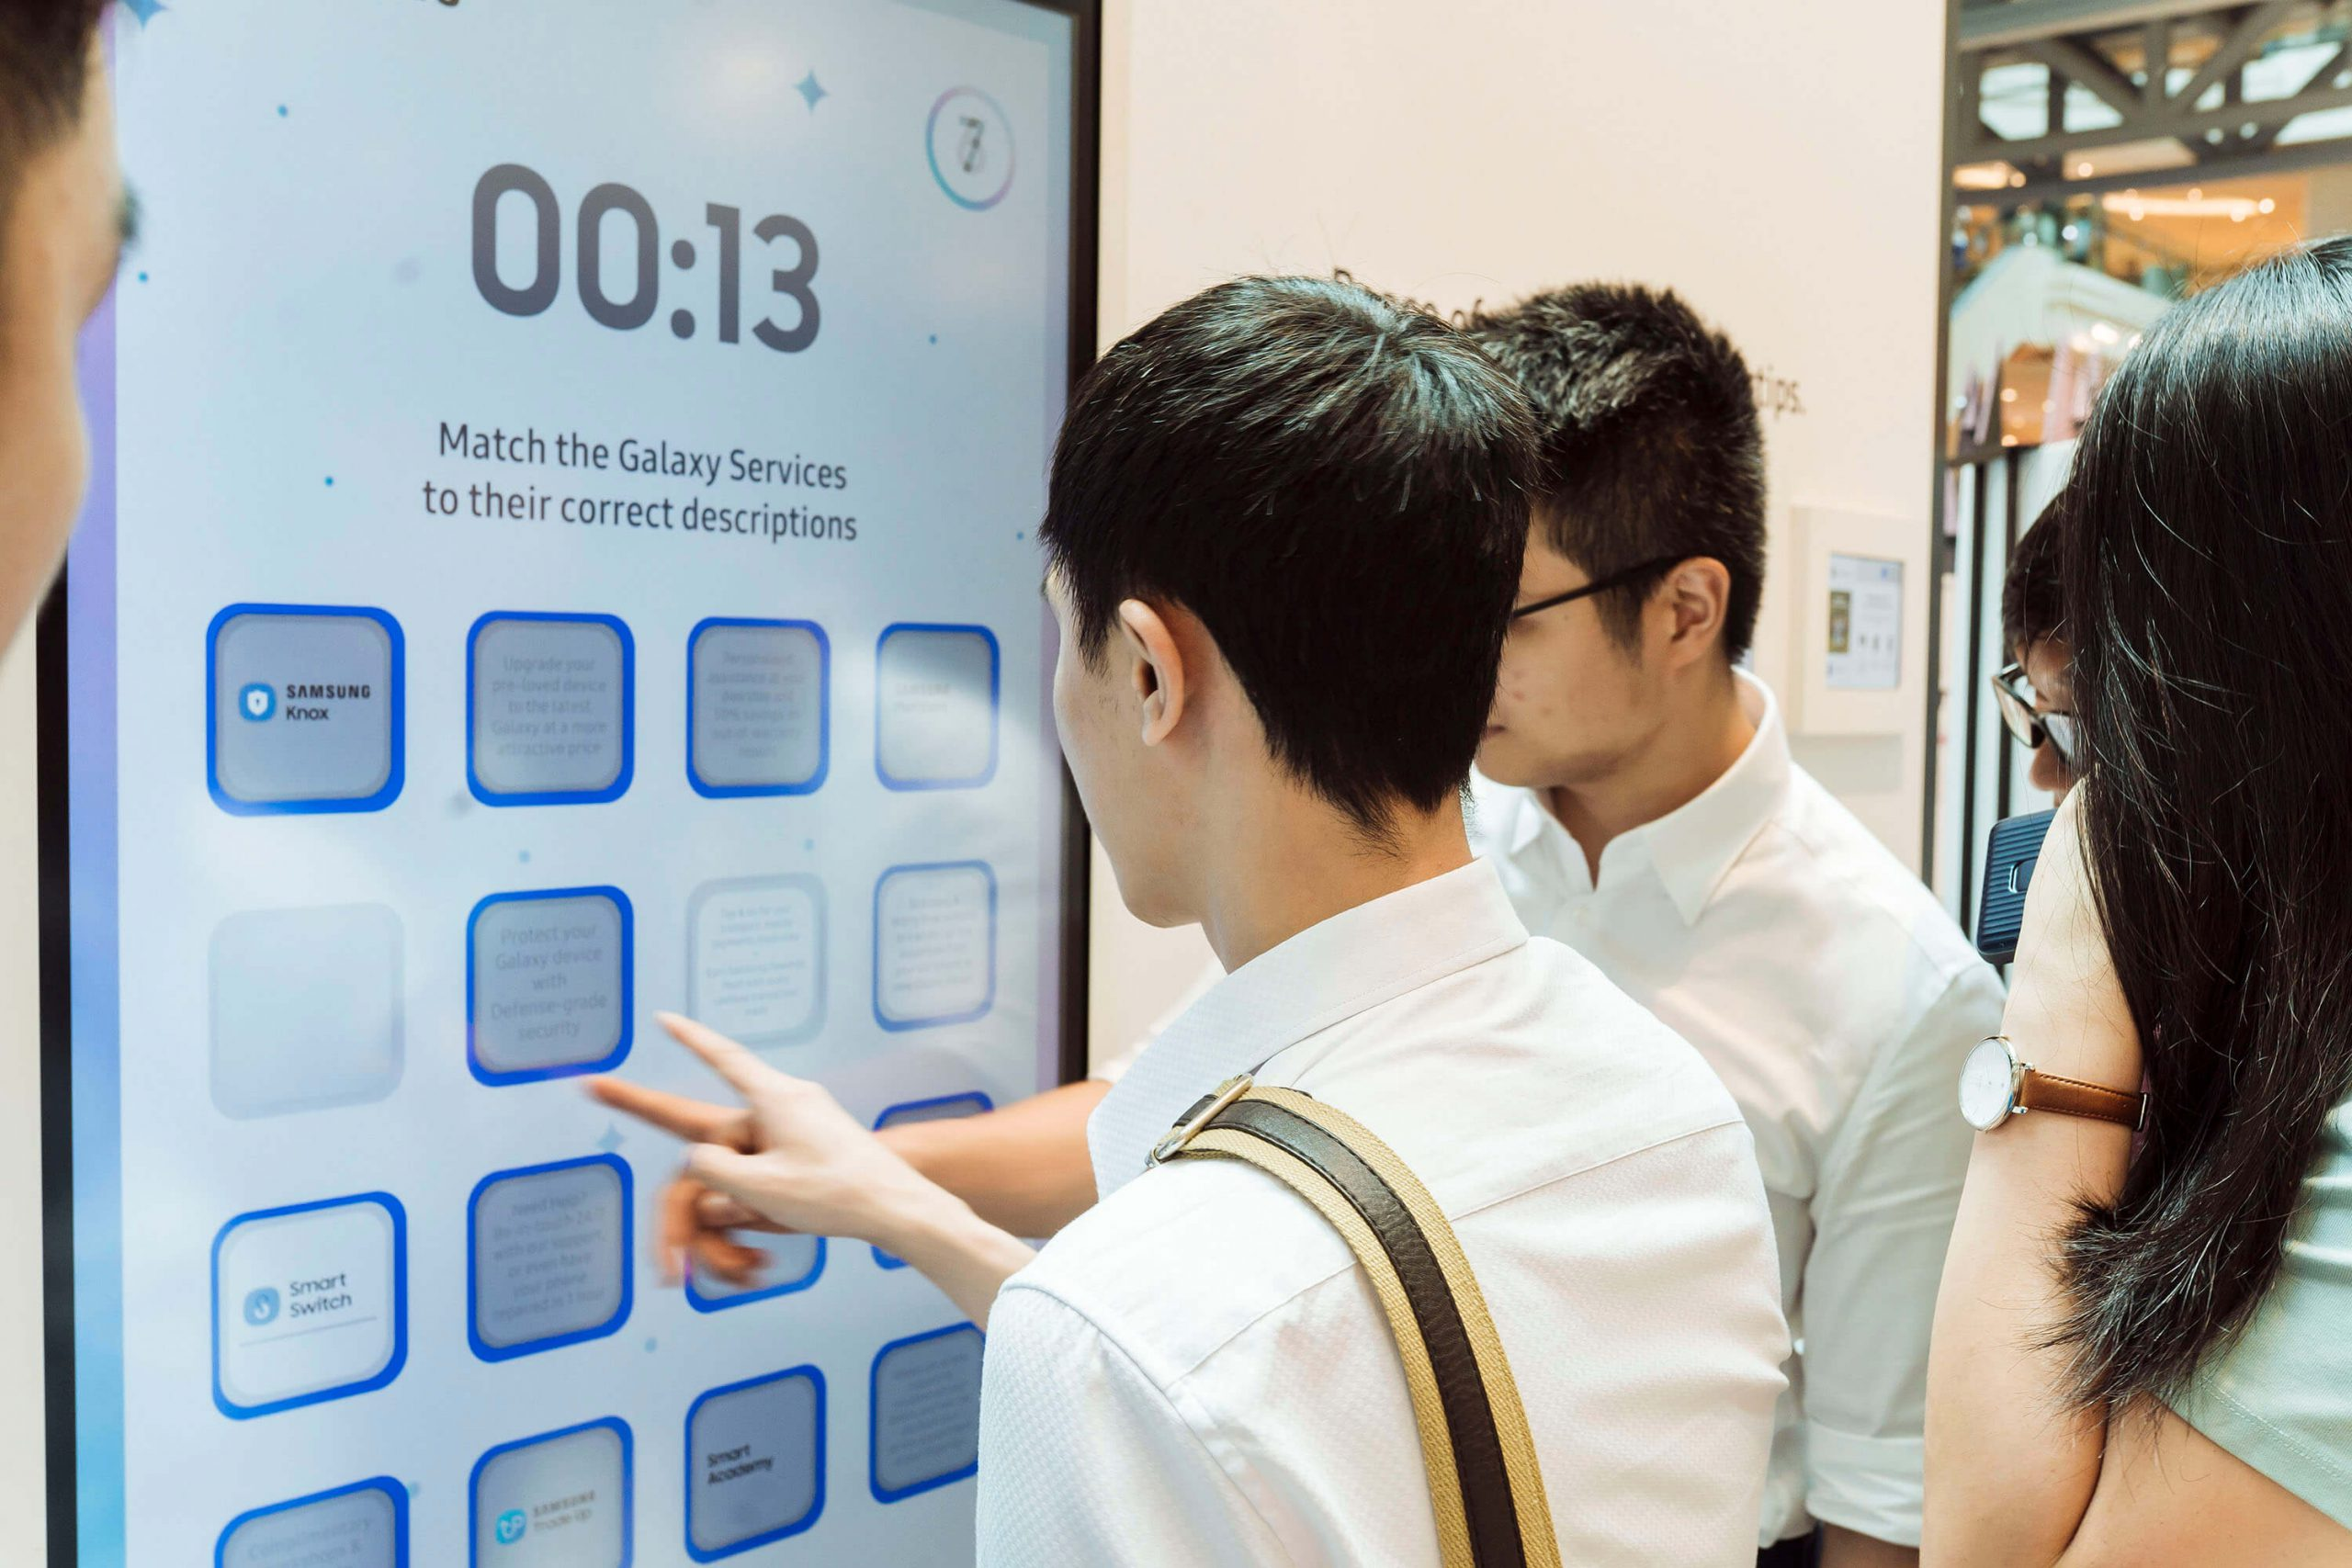 Two men team up to play the Samsung Galaxy Services Memory Game as others watch on